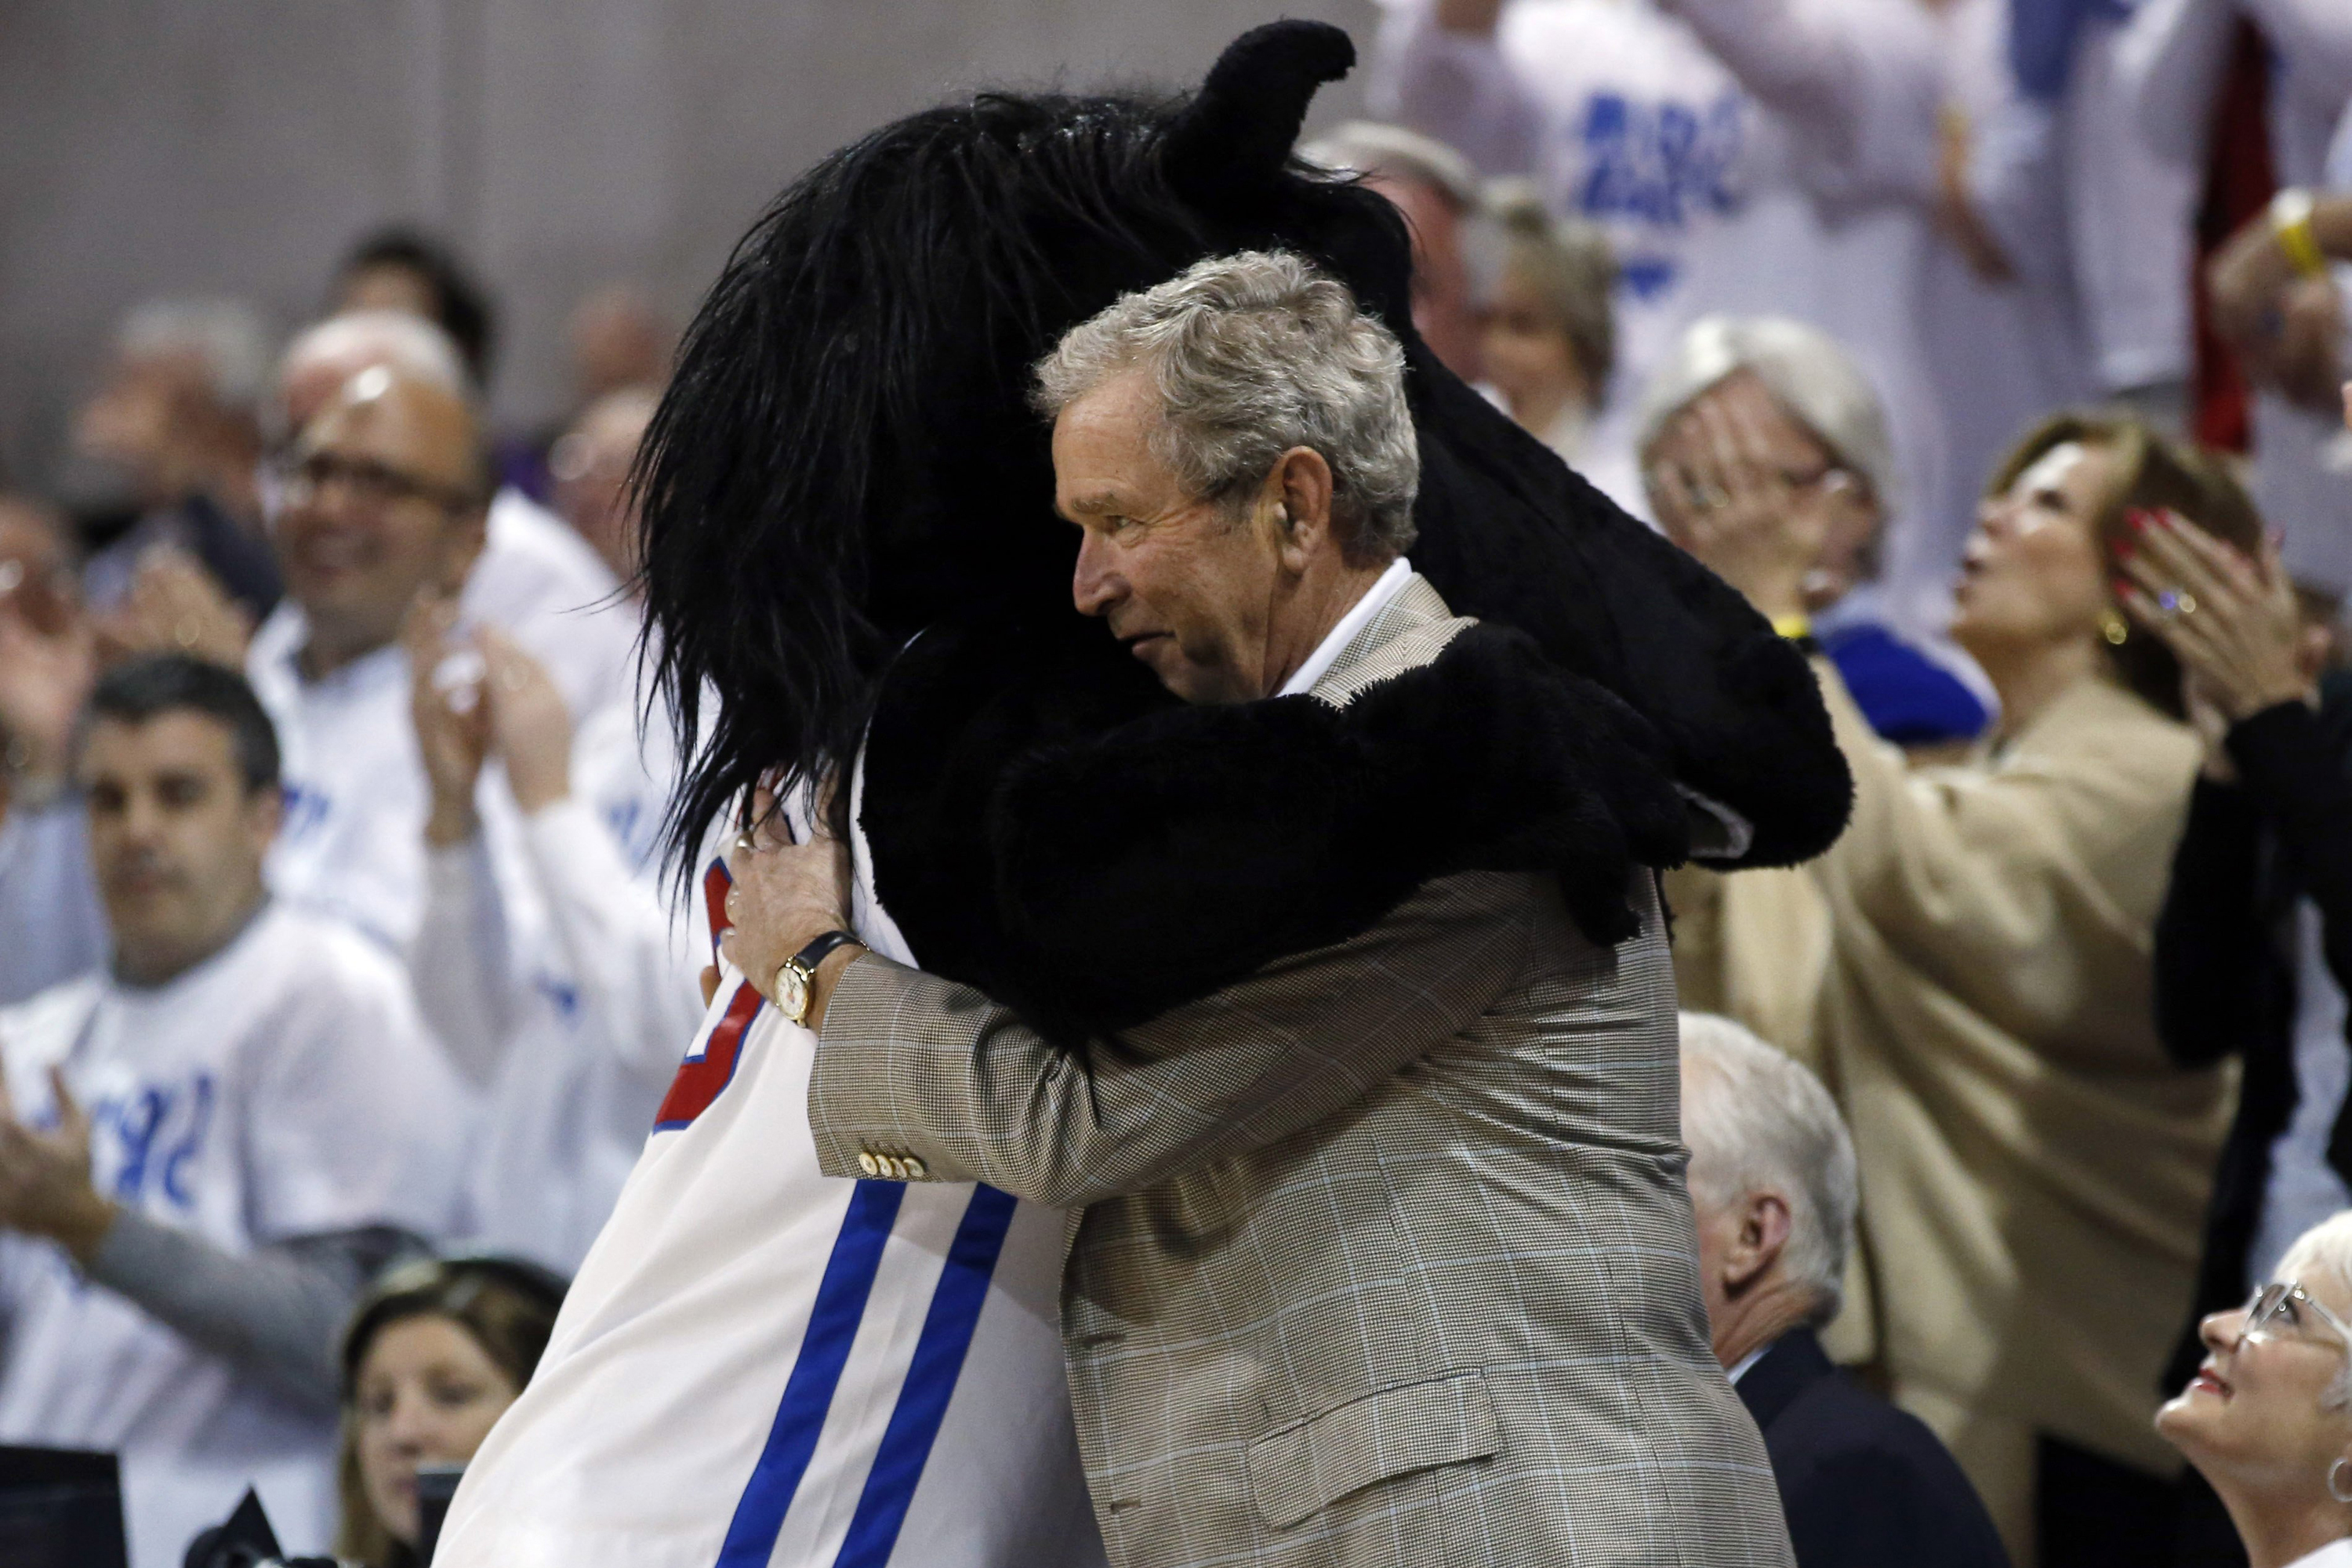 Former President George W. Bush gets a hug from SMU mascot Peruna during a break in the first of an NCAA college basketball game between SMU and Louisville on March 5, 2014, in Dallas.